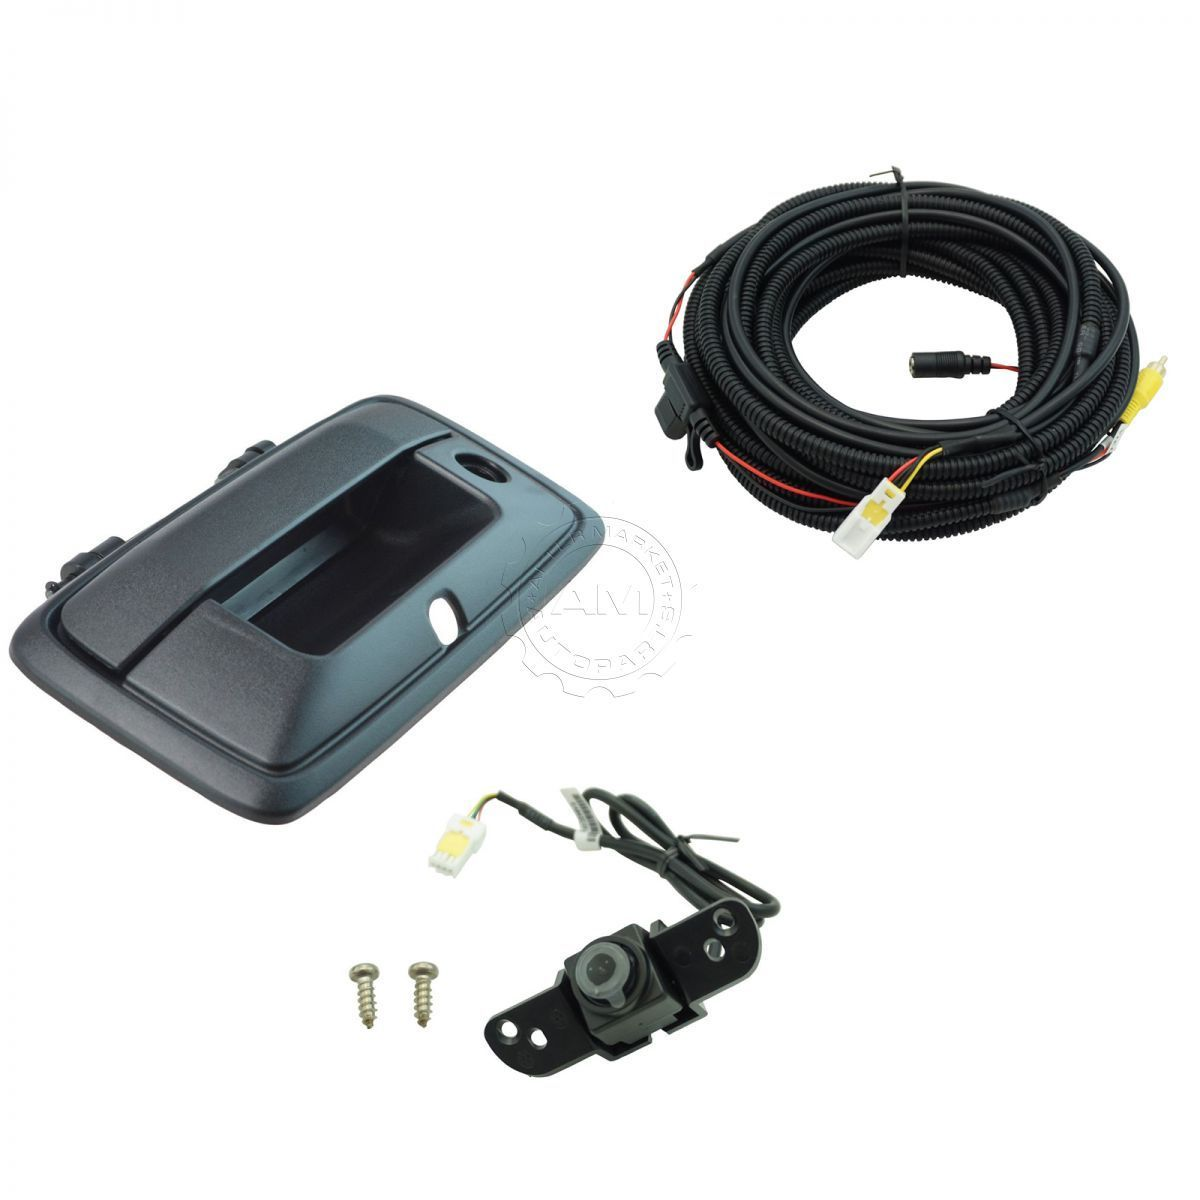 Wiring Archives Camera Repair Parts Store Gm Harness Rear View Add On Kit W Tailgate Handle For Pickup